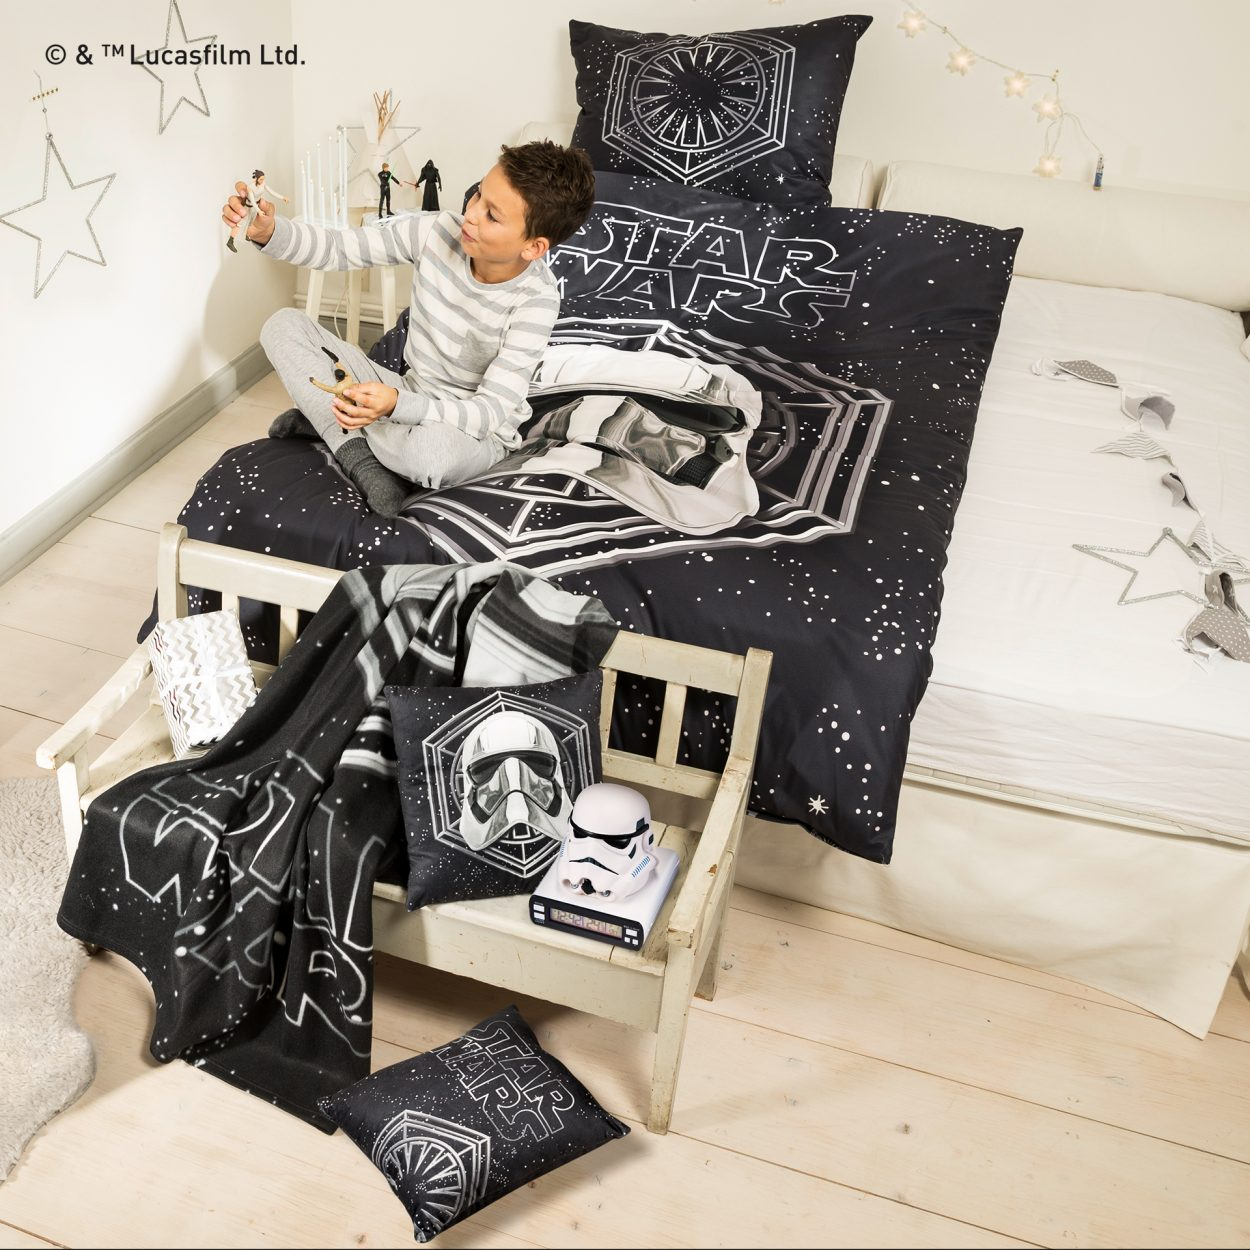 star wars bettw sche aldi my blog. Black Bedroom Furniture Sets. Home Design Ideas